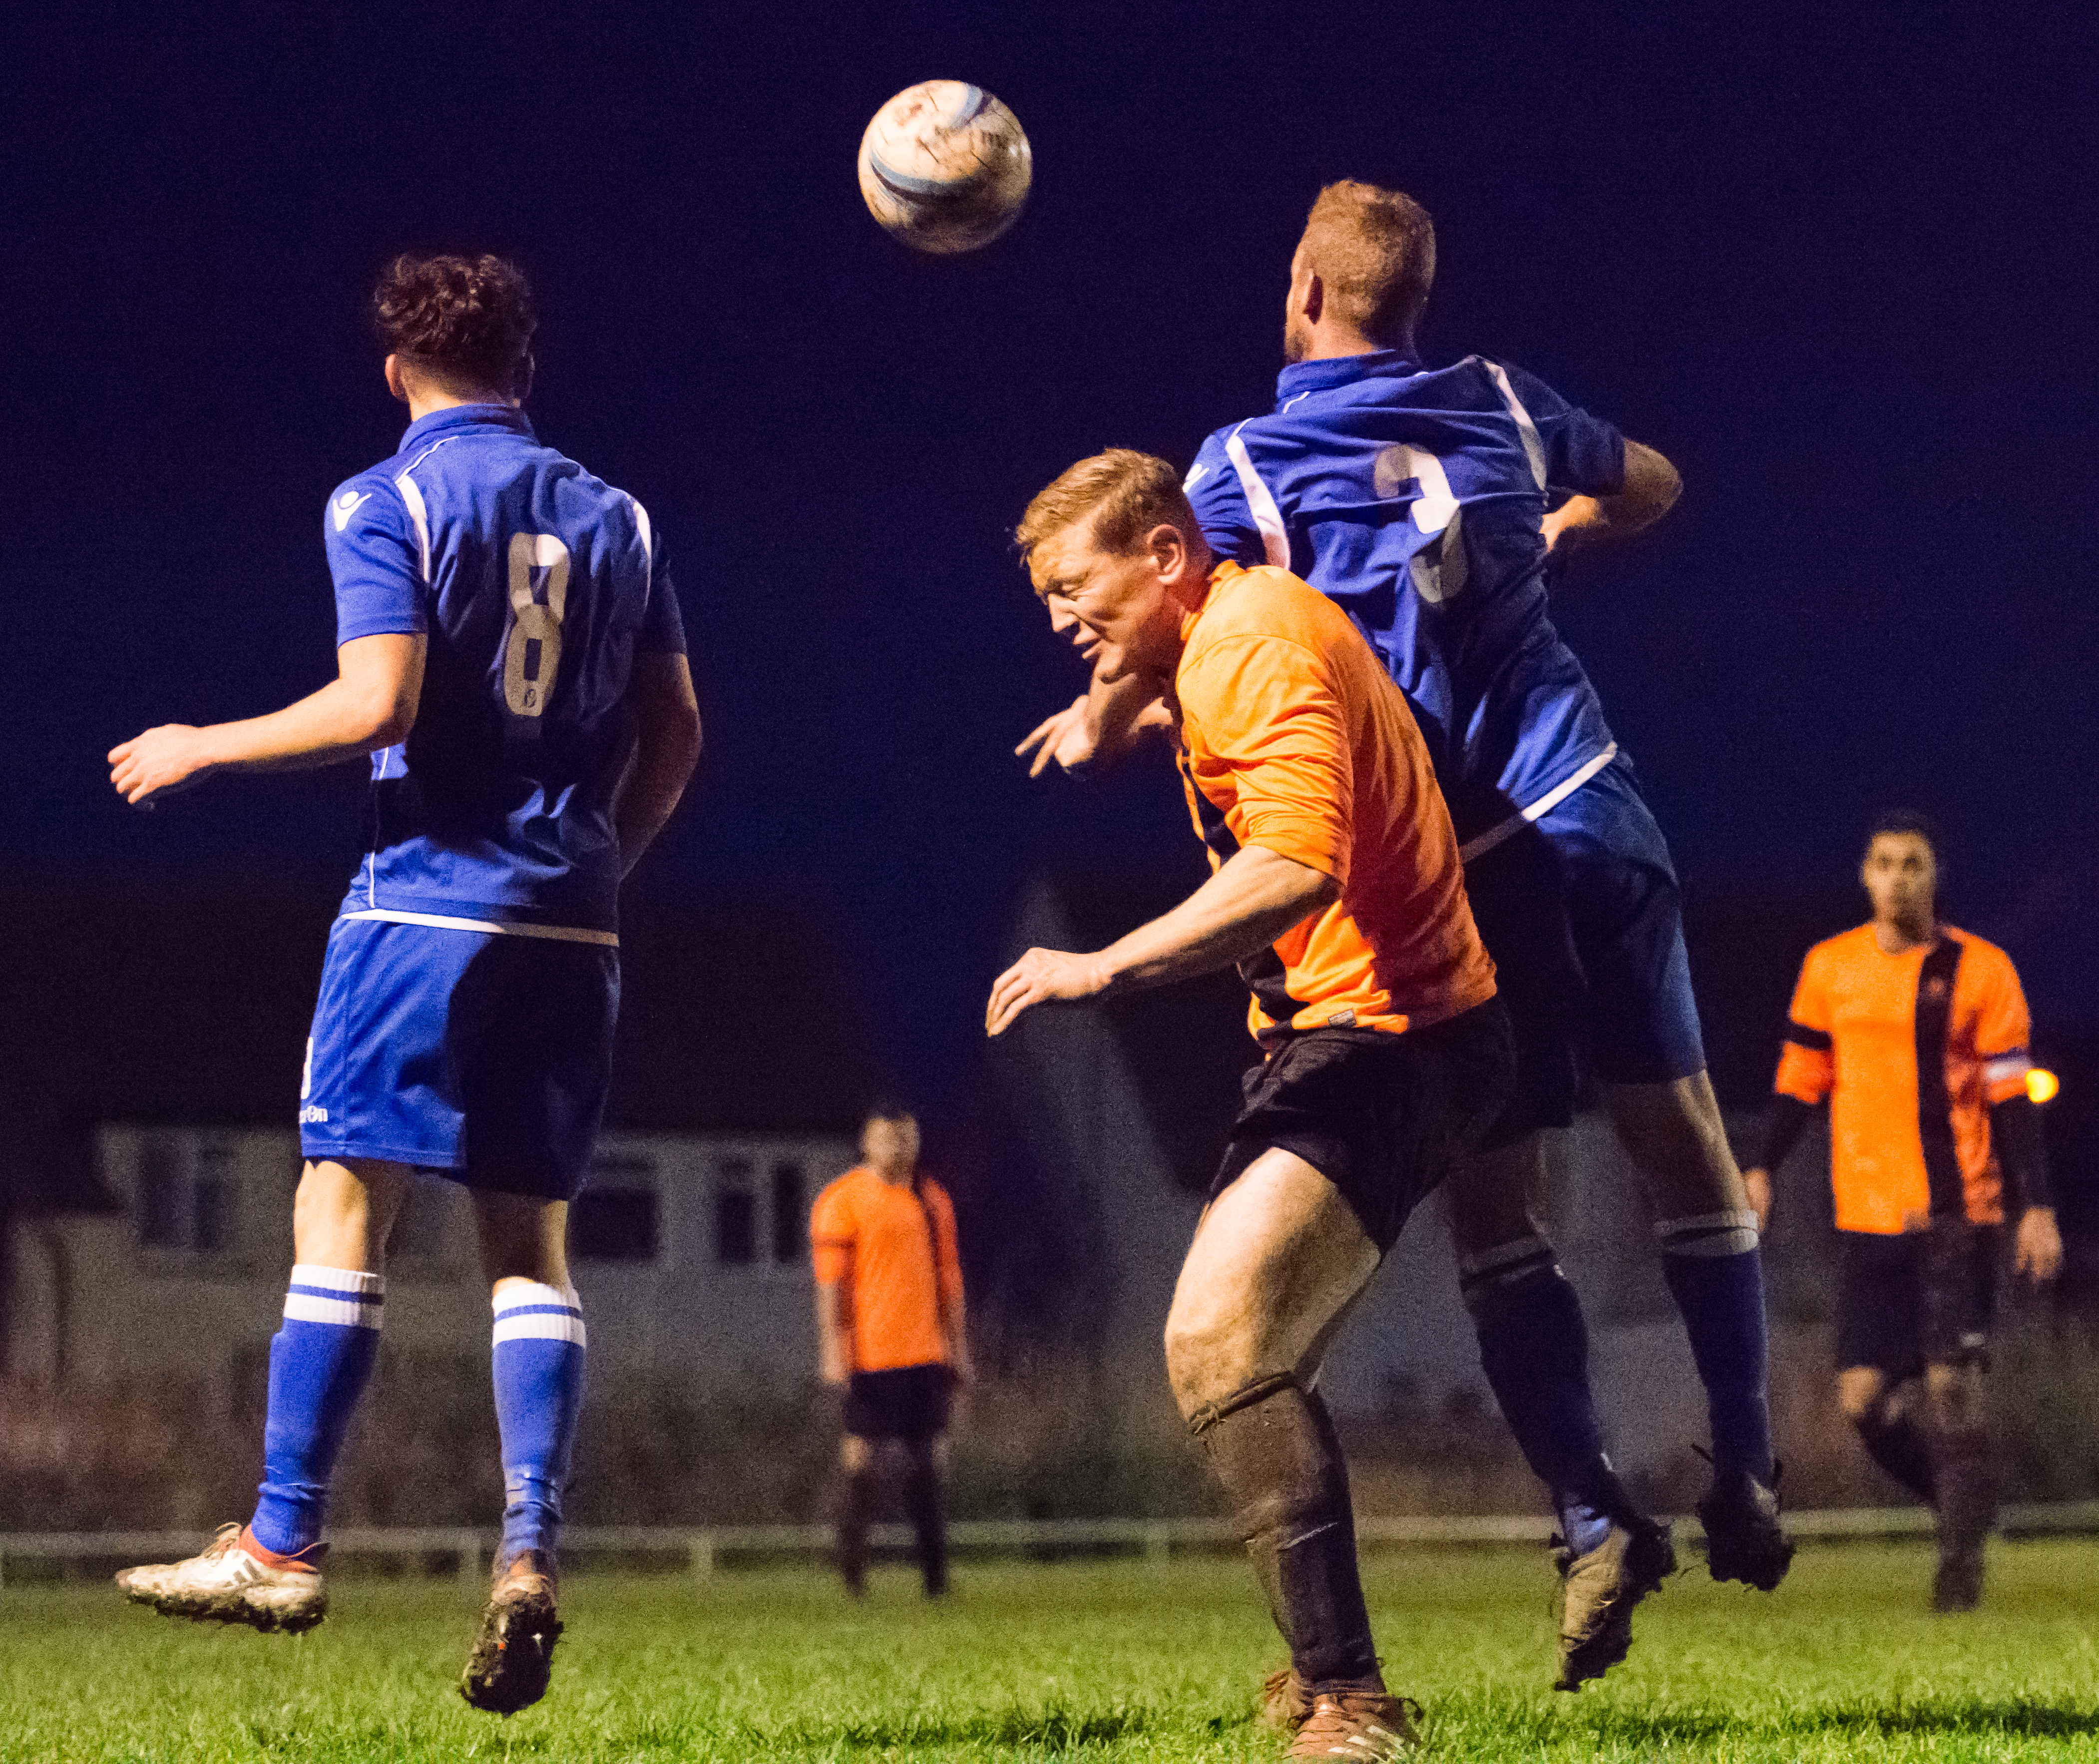 Mile Oak Res vs Sidley United 09.12.17 53